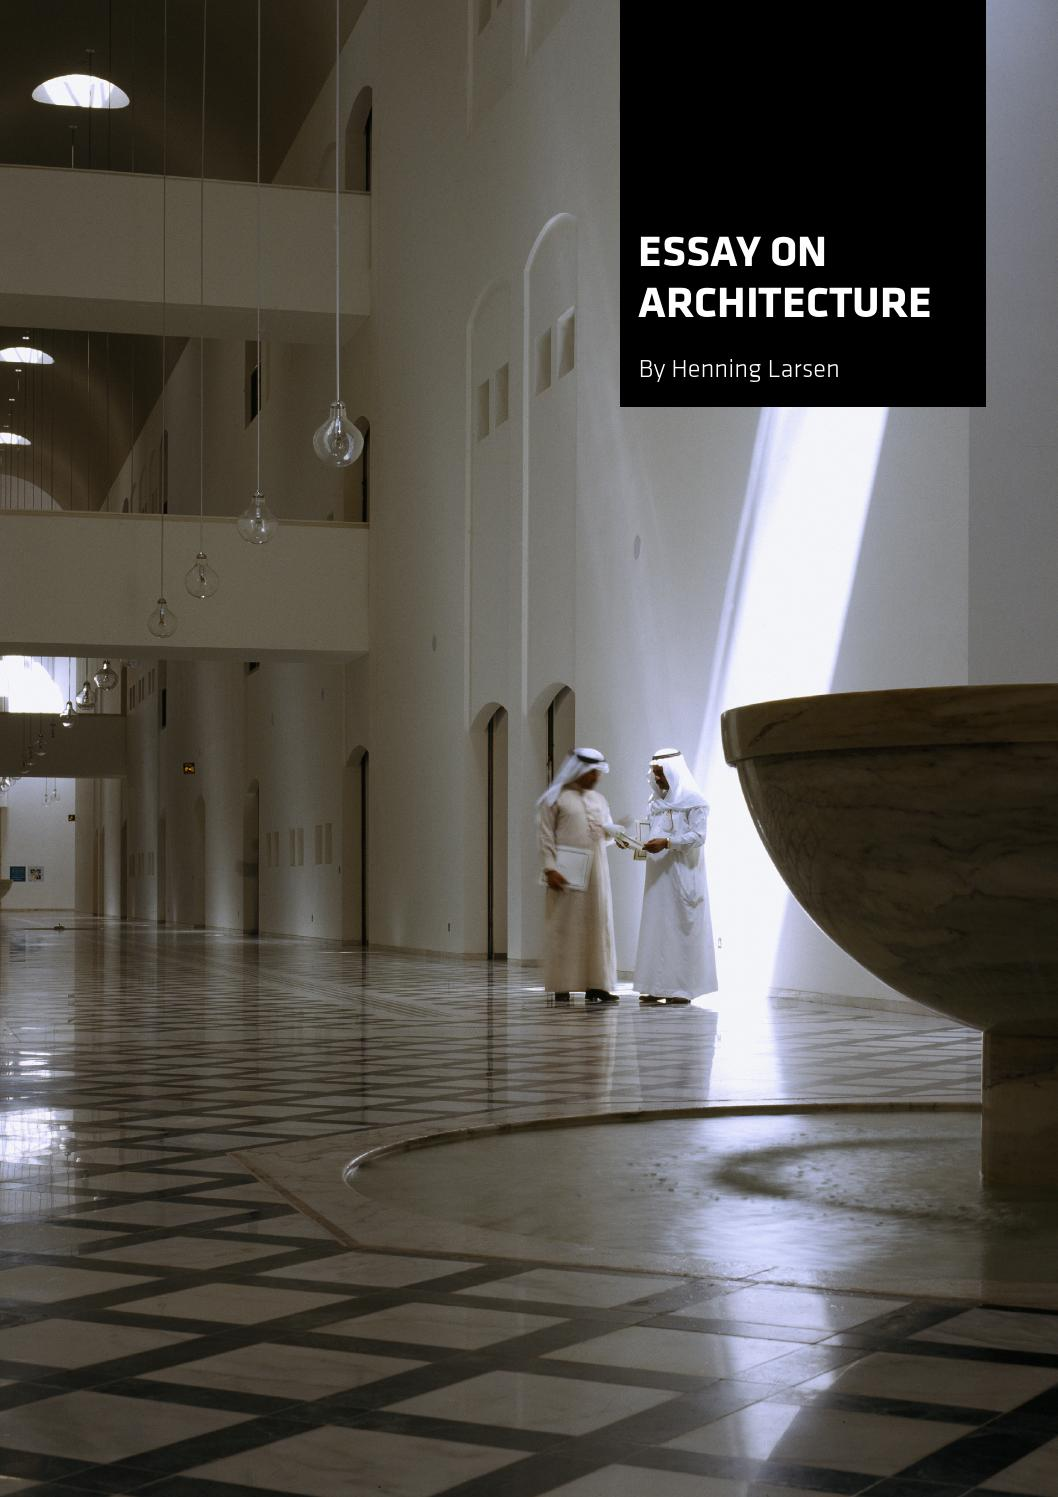 essay on architecture by henning larsen architects issuu